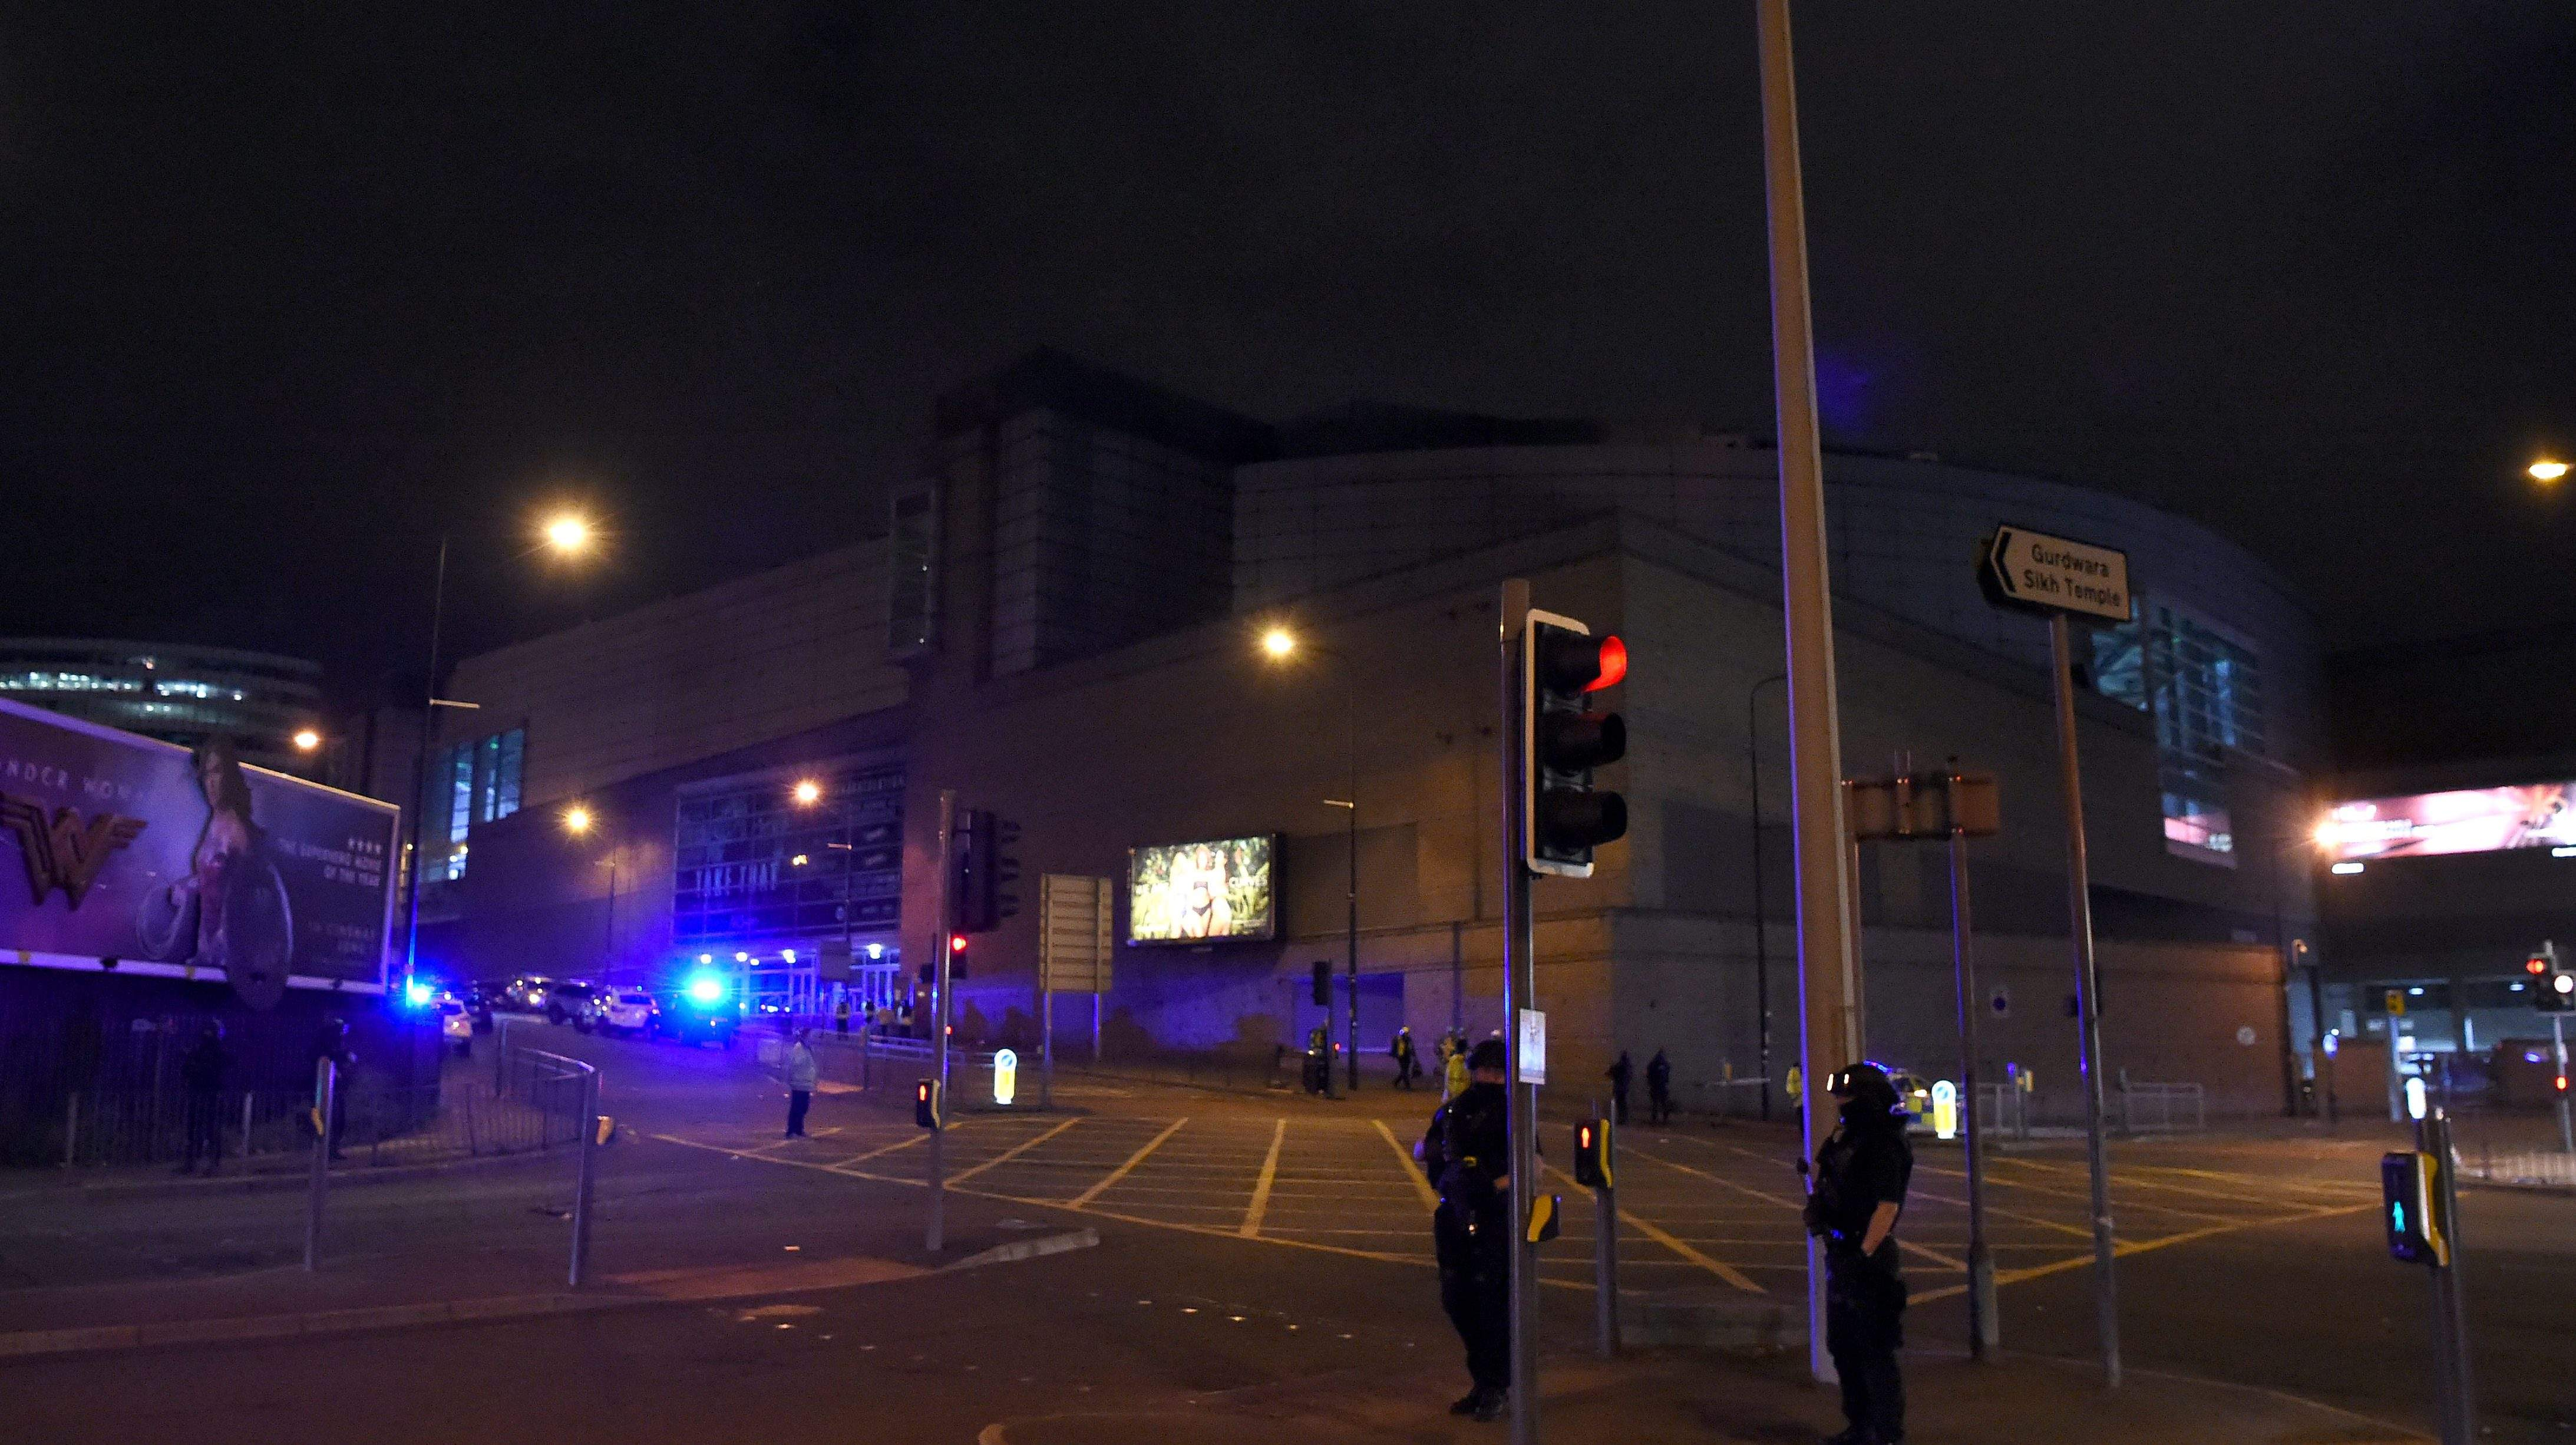 Police present at the Manchester Arena in United Kingdom where a bomb explosion killed 19 people and injured 50 others.